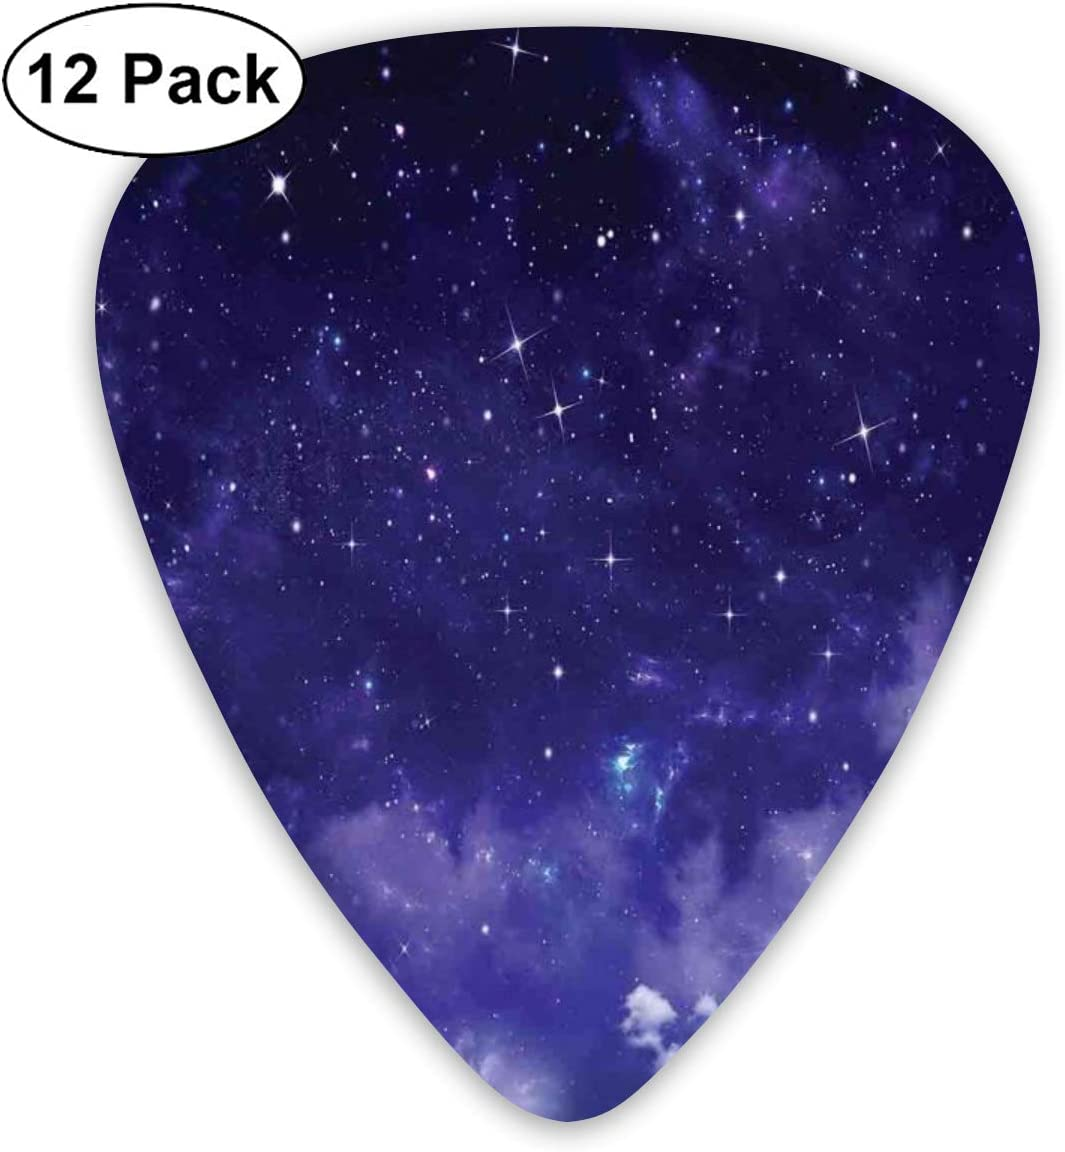 Guitar Picks12pcs Plectrum (0.46mm-0.96mm), Dreamy Night With Stars Clouds Comets Ethereal Evening Surreal Calm Scene Picture,For Your Guitar or Ukulele